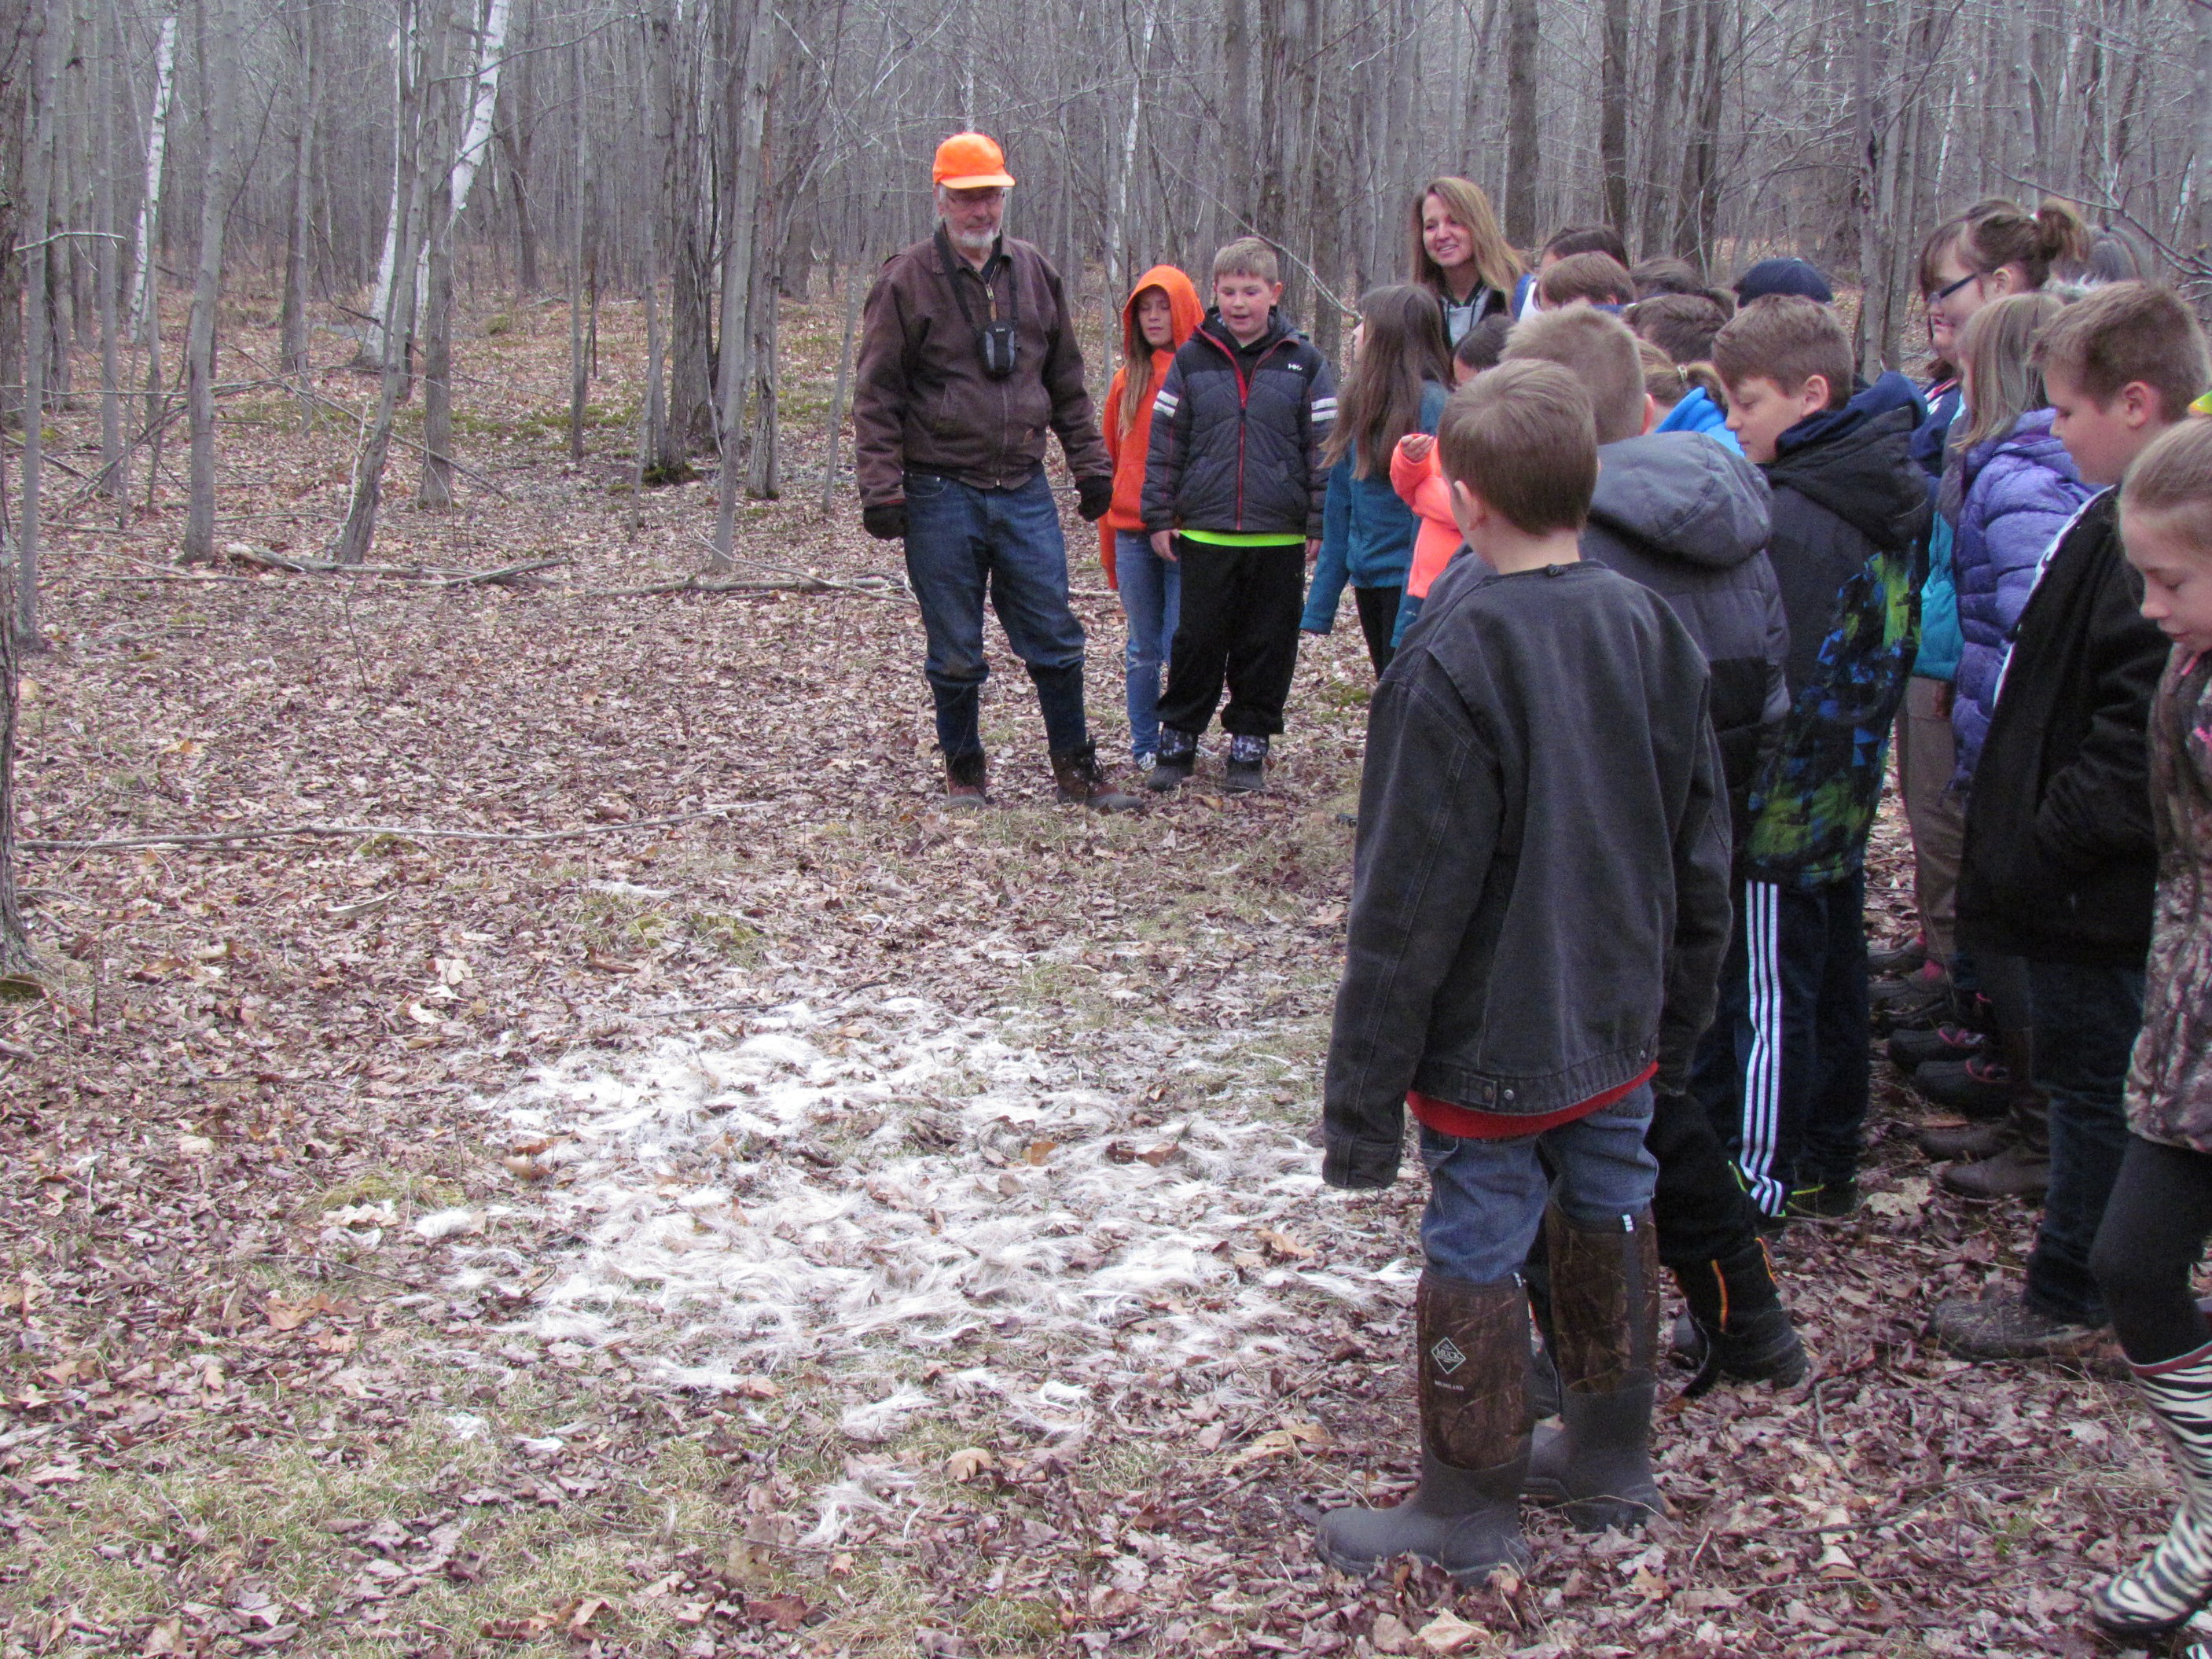 Linwood 4th graders viewing remains of deer in the woods